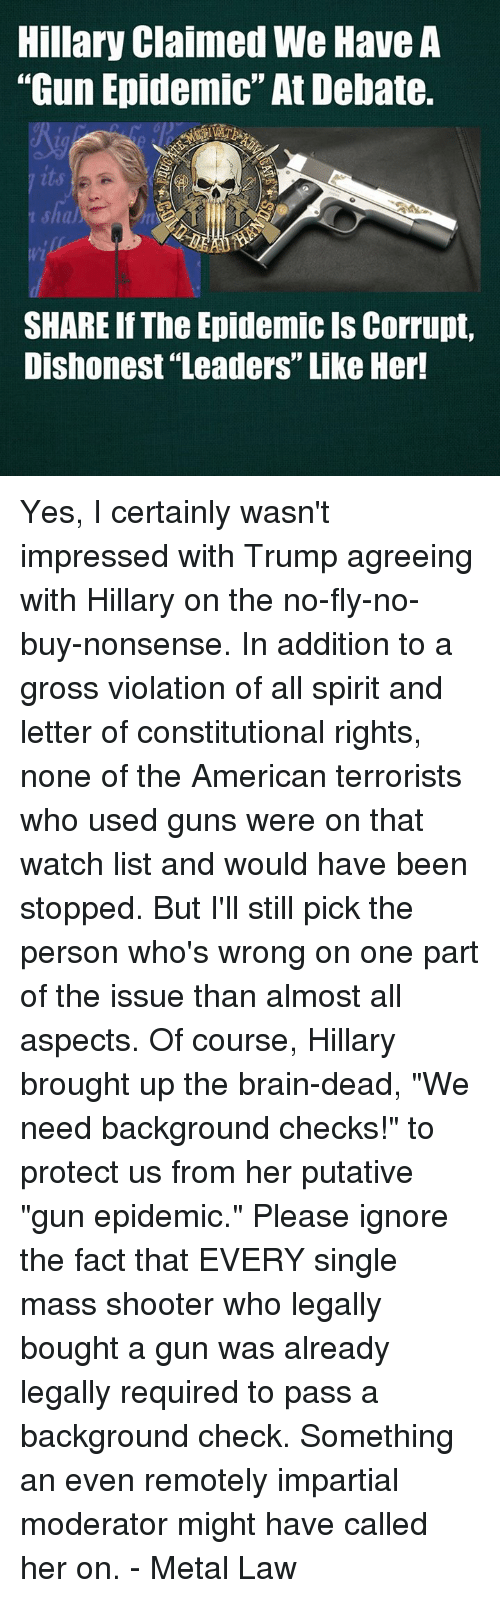 "impartial: Hillary Claimed We Have A  ""Gun Epidemic""At Debate.  SHARE If The Epidemic ls Corrupt,  Dishonest Leaders"" Like Her! Yes, I certainly wasn't impressed with Trump agreeing with Hillary on the no-fly-no-buy-nonsense.  In addition to a gross violation of all spirit and letter of constitutional rights, none of the American terrorists who used guns were on that watch list and would have been stopped. But I'll still pick the person who's wrong on one part of the issue than almost all aspects.  Of course, Hillary brought up the brain-dead, ""We need background checks!"" to protect us from her putative ""gun epidemic.""  Please ignore the fact that EVERY single mass shooter who legally bought a gun was already legally required to pass a background check.  Something an even remotely impartial moderator might have called her on. - Metal Law"